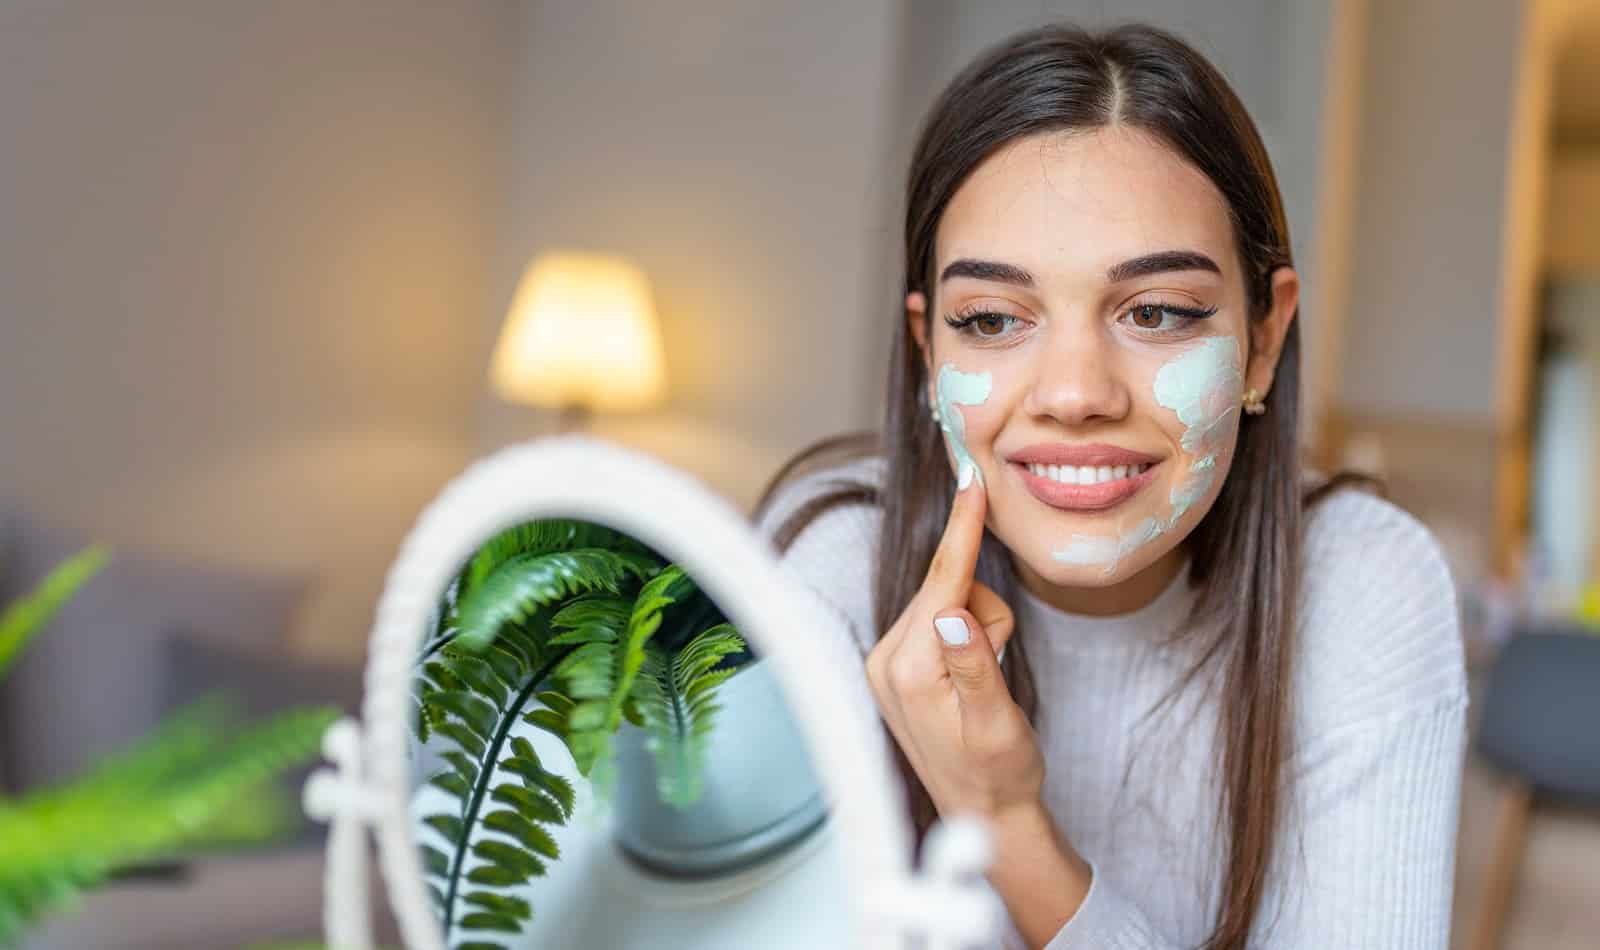 Kaolin clay face masks are among the best at-home beauty products-gentle, yet a great detoxifier! Check out some DIY and store-bought ideas to try!